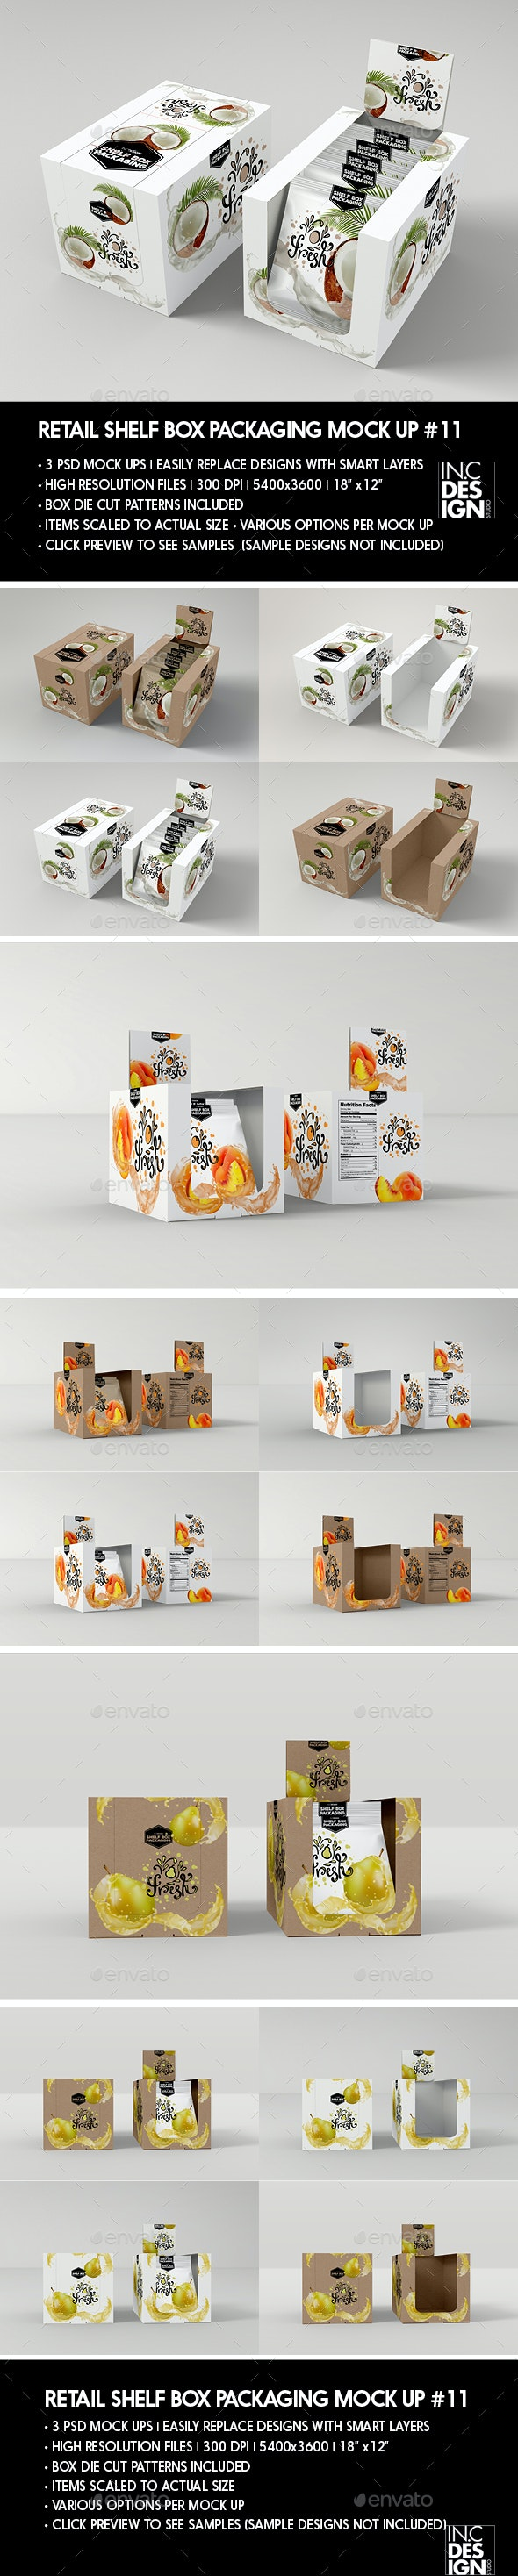 Retail Shelf Box Packaging MockUp No.11 - Food and Drink Packaging